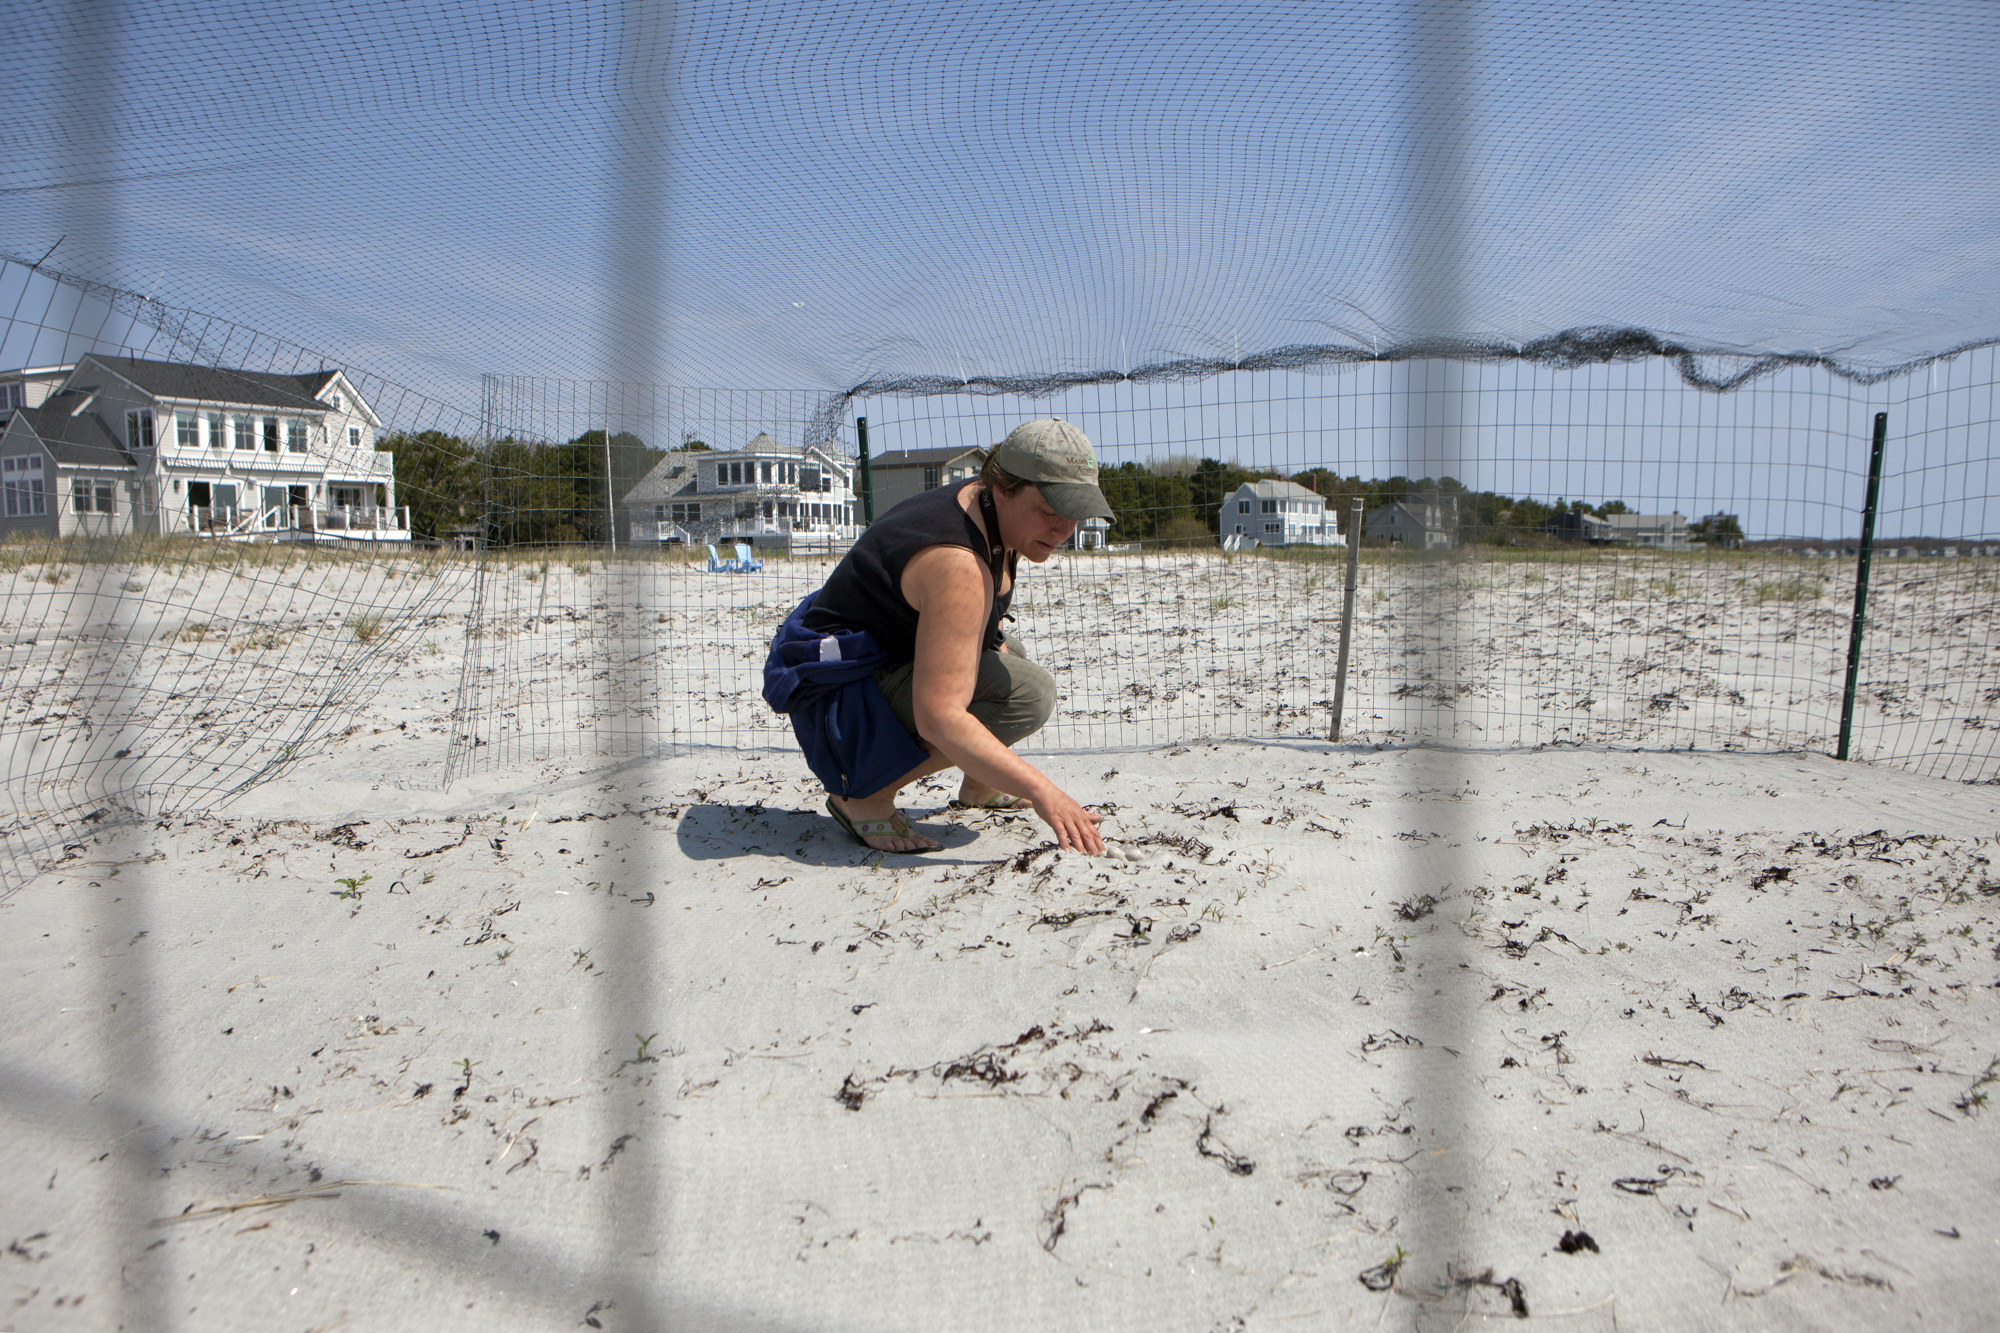 Laura Minich Zitske, director of Maine Audubon's coastal birds project, uncovers an abandoned Piping Plover nest at Goose Rocks Beach in Kennebunkport, Maine on May 17.